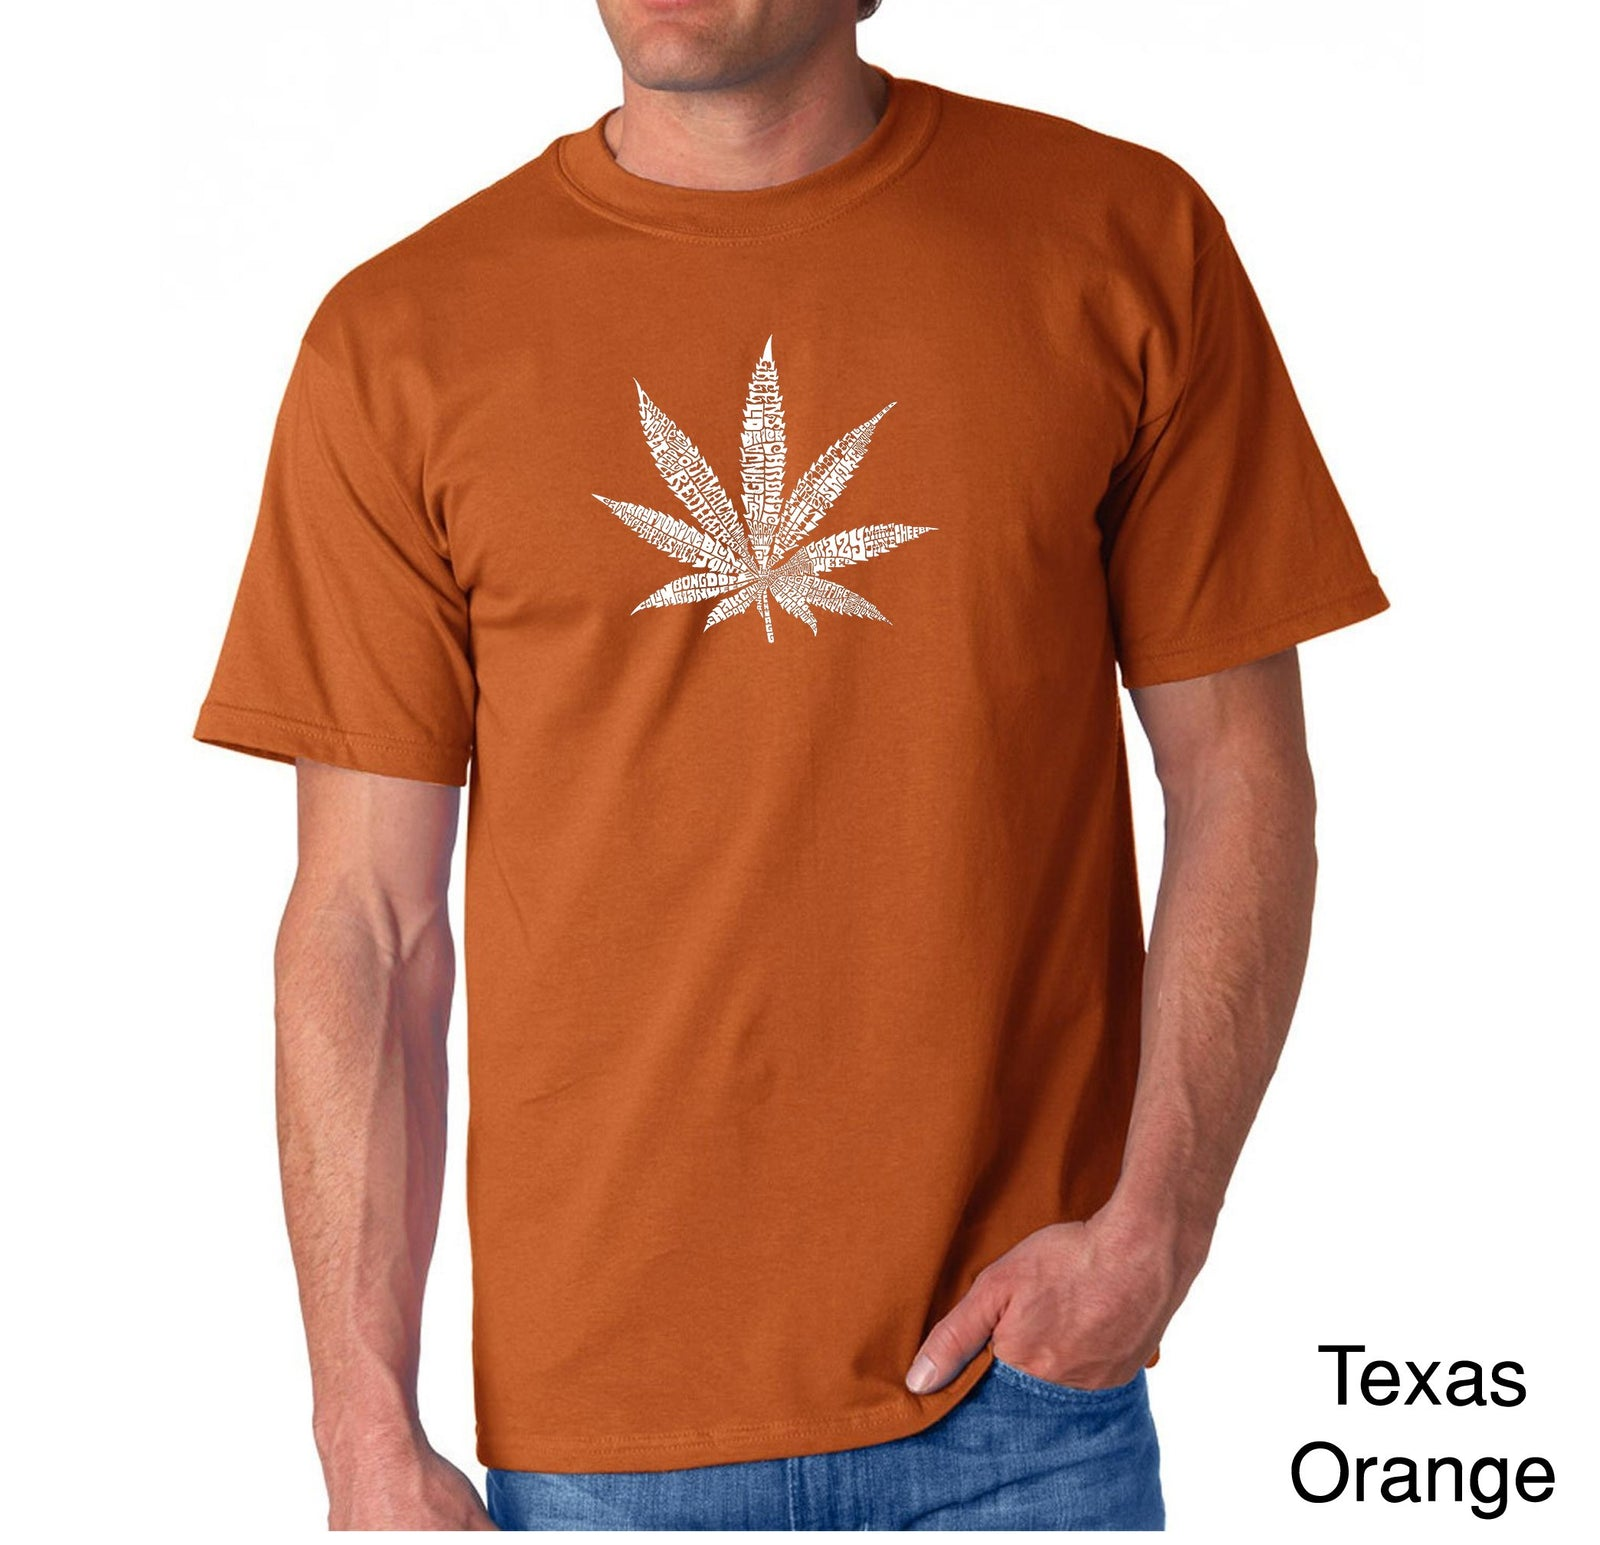 Men's T-shirt - 50 DIFFERENT STREET TERMS FOR MARIJUANA